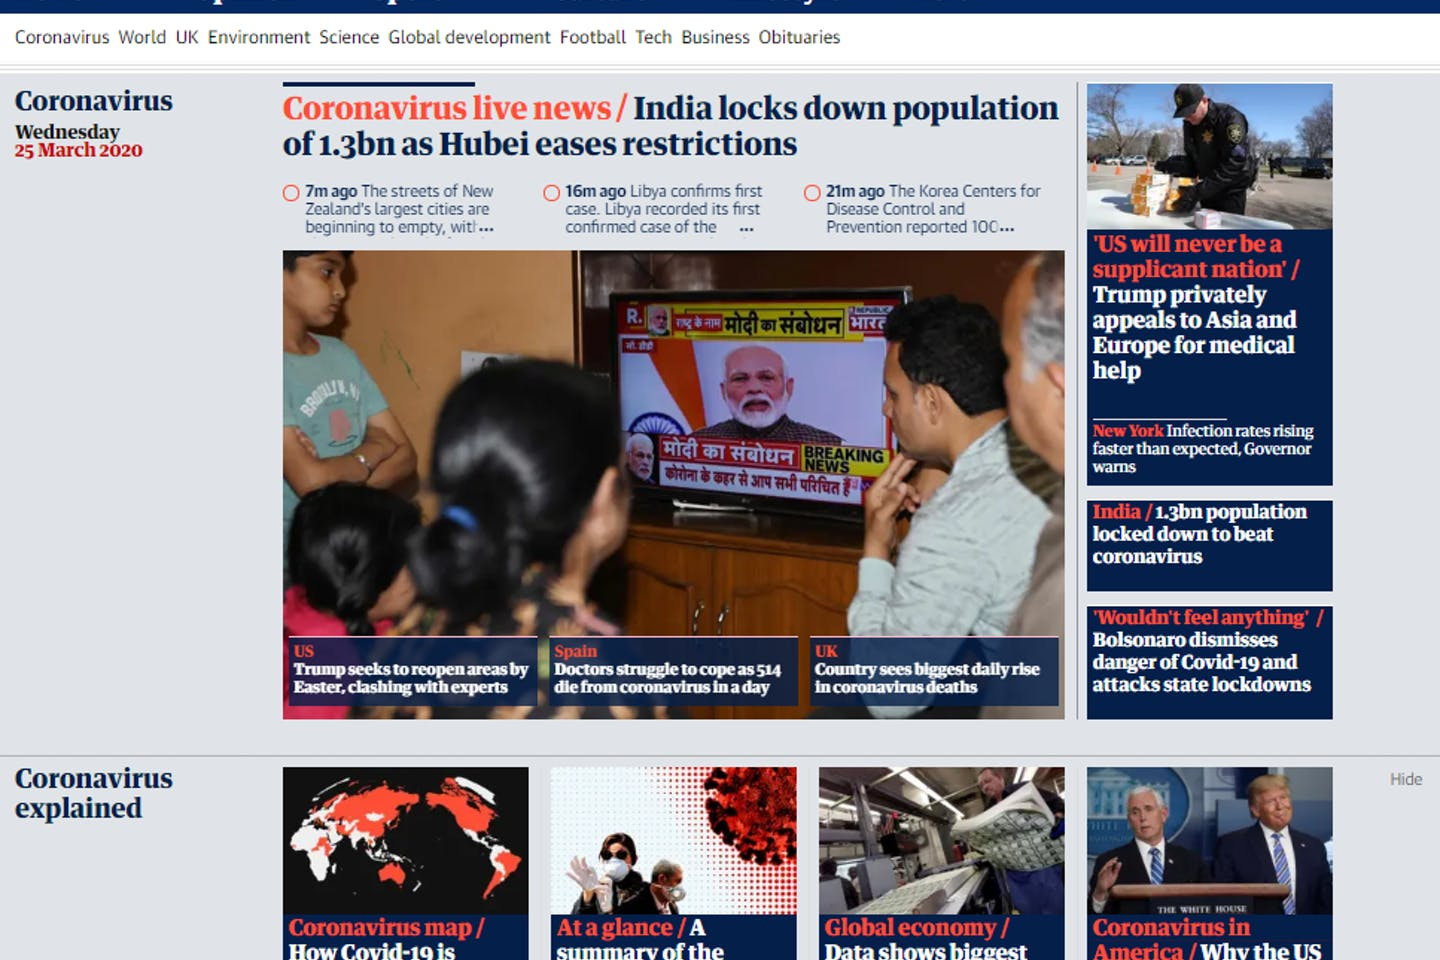 The homepage of TheGuardian.com, the world's most popular international website for sustainability news, is swamped with coverage of the coronavirus on Wednesday 25 March. Image: www.theguardian.com/international screengrab